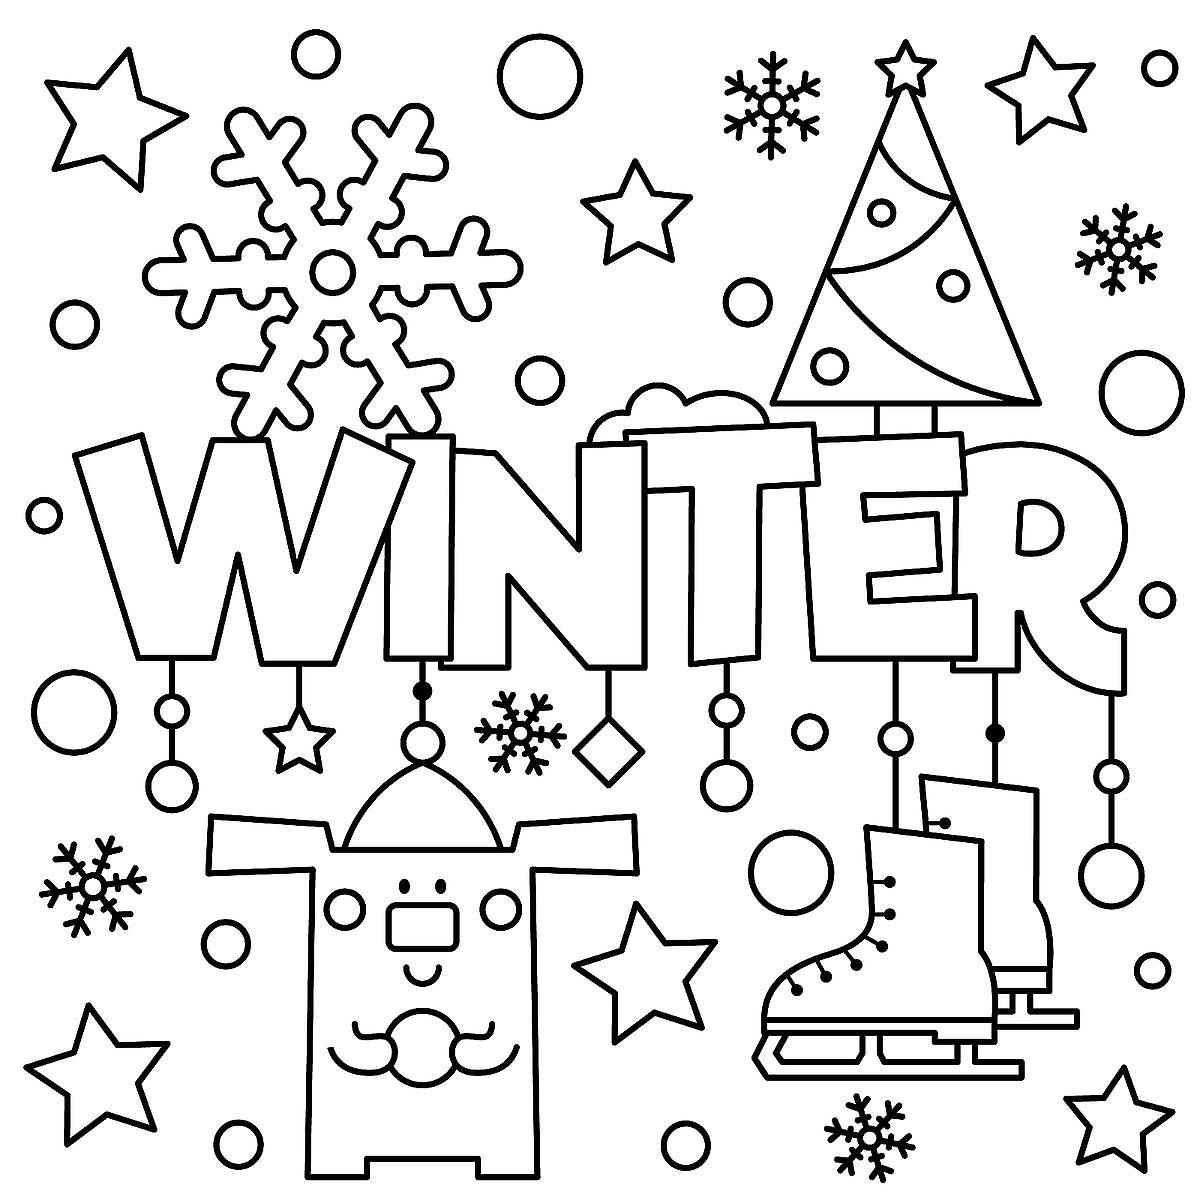 Print Out These Fun Winter Coloring And Activity Pages Grab A Box Of Crayons Set Your Kids At The Table Listen Shhh To Magic Happen